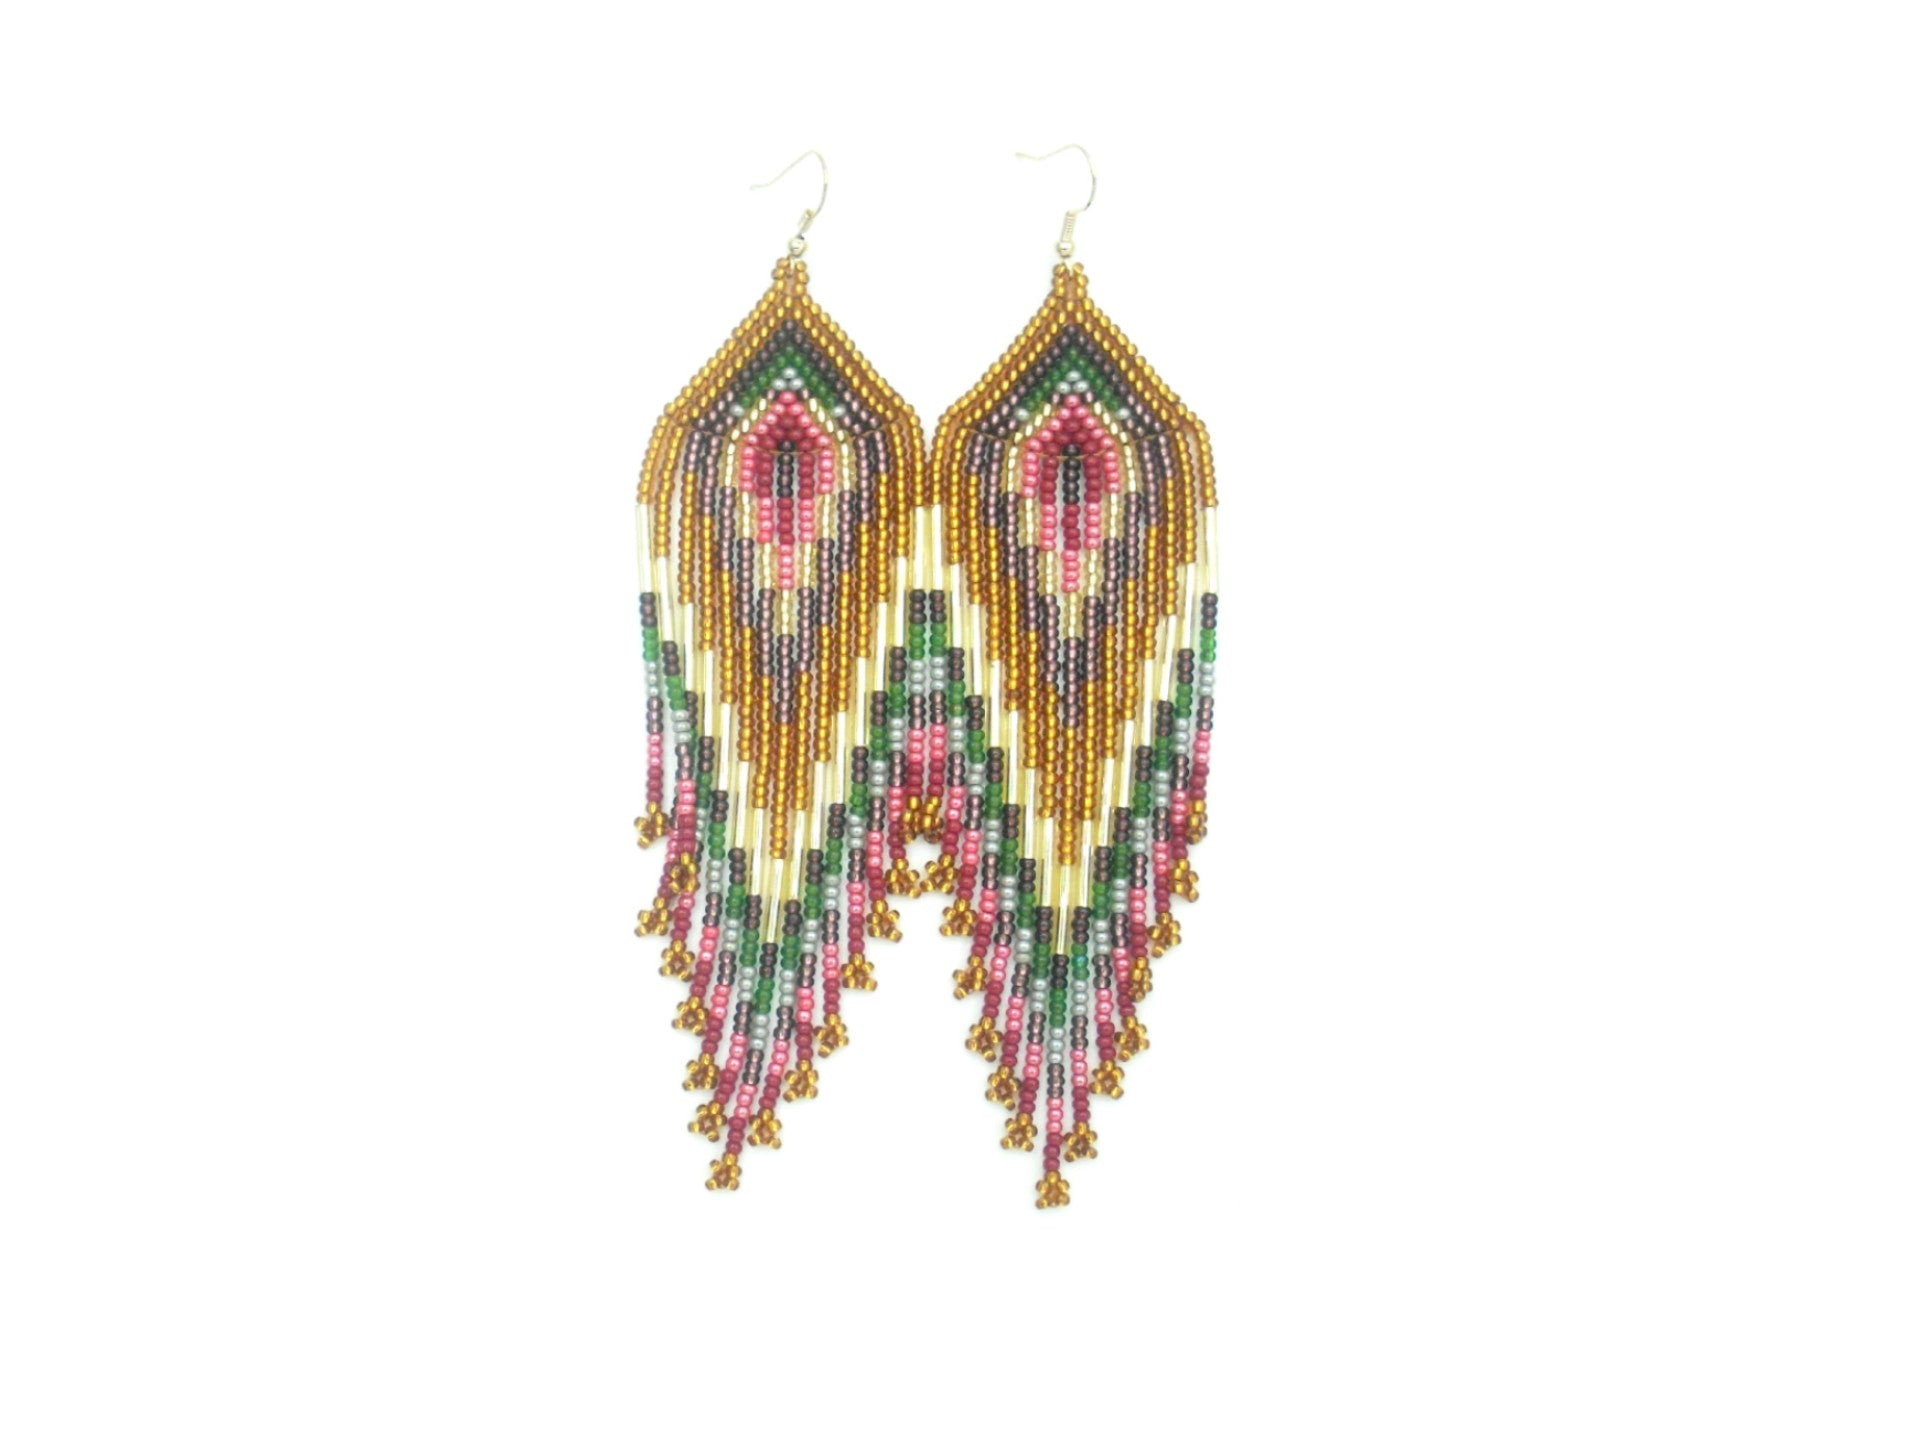 Priscilla: Brown Burnt Orange Gold Cranberry Earrings Front